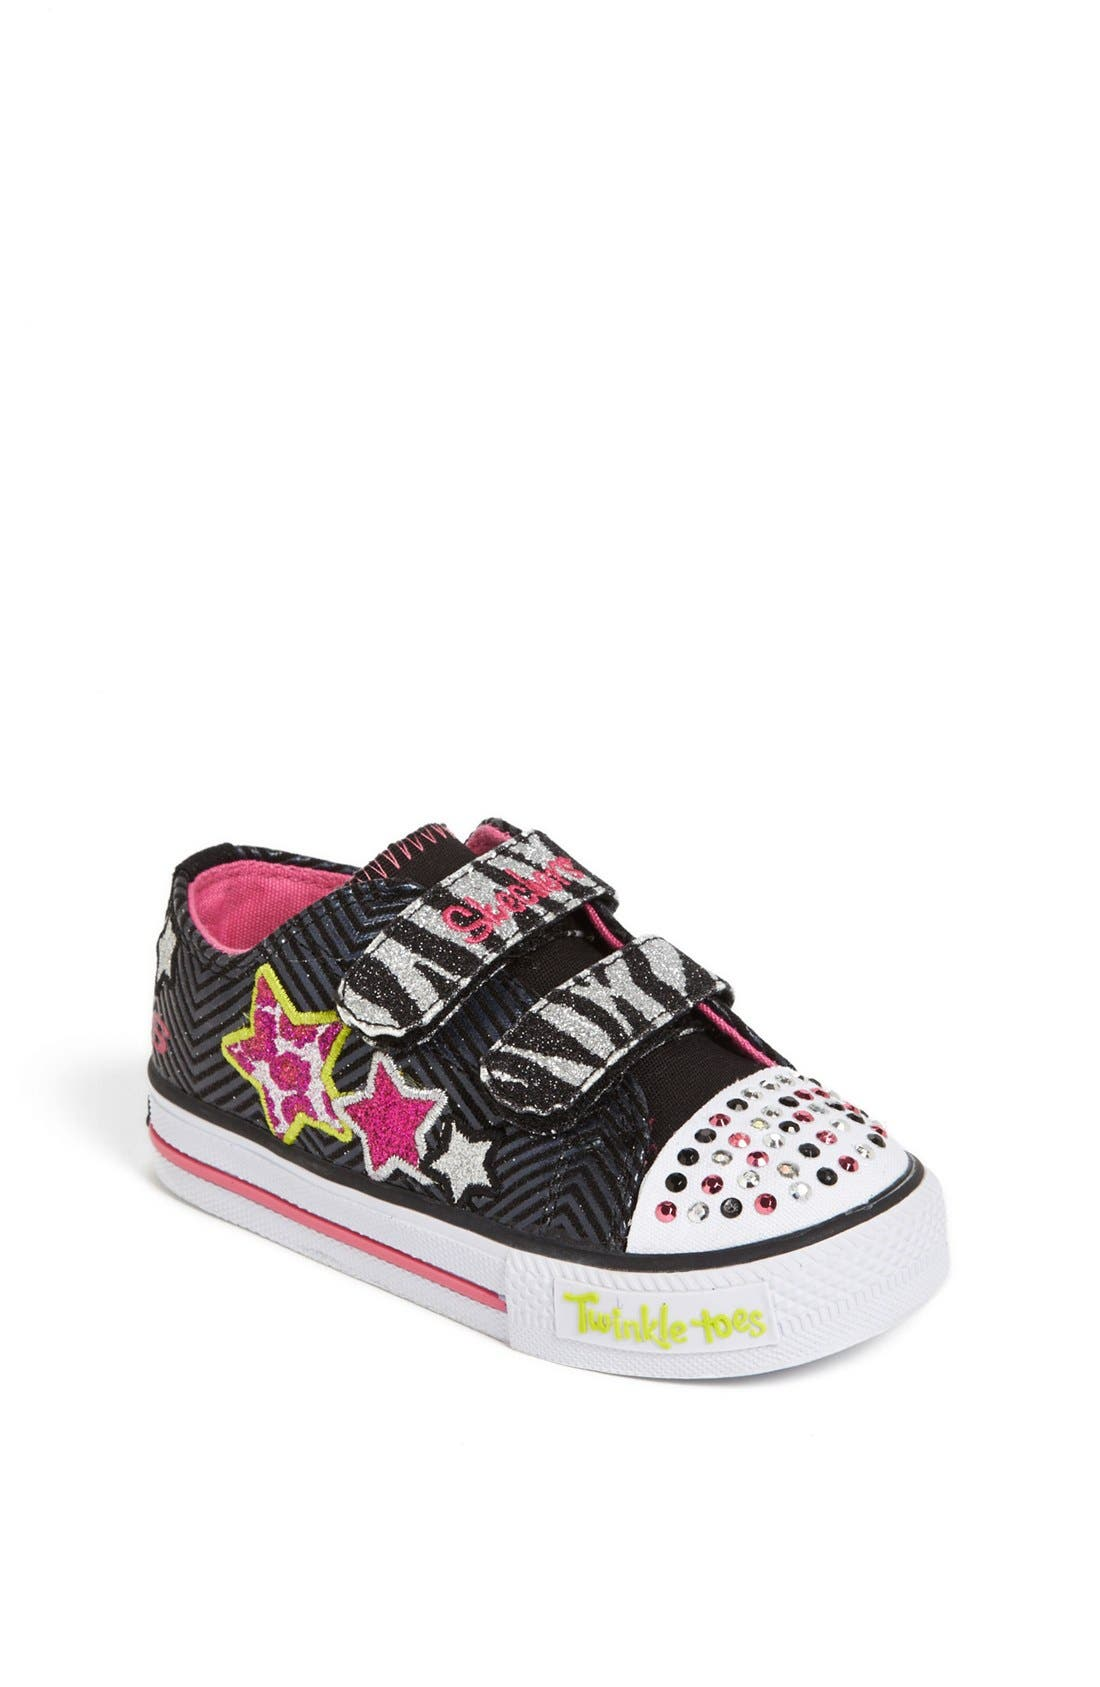 Main Image - SKECHERS 'Twinkle Toes - Wild Starlight' Light-Up Sneaker (Walker & Toddler)